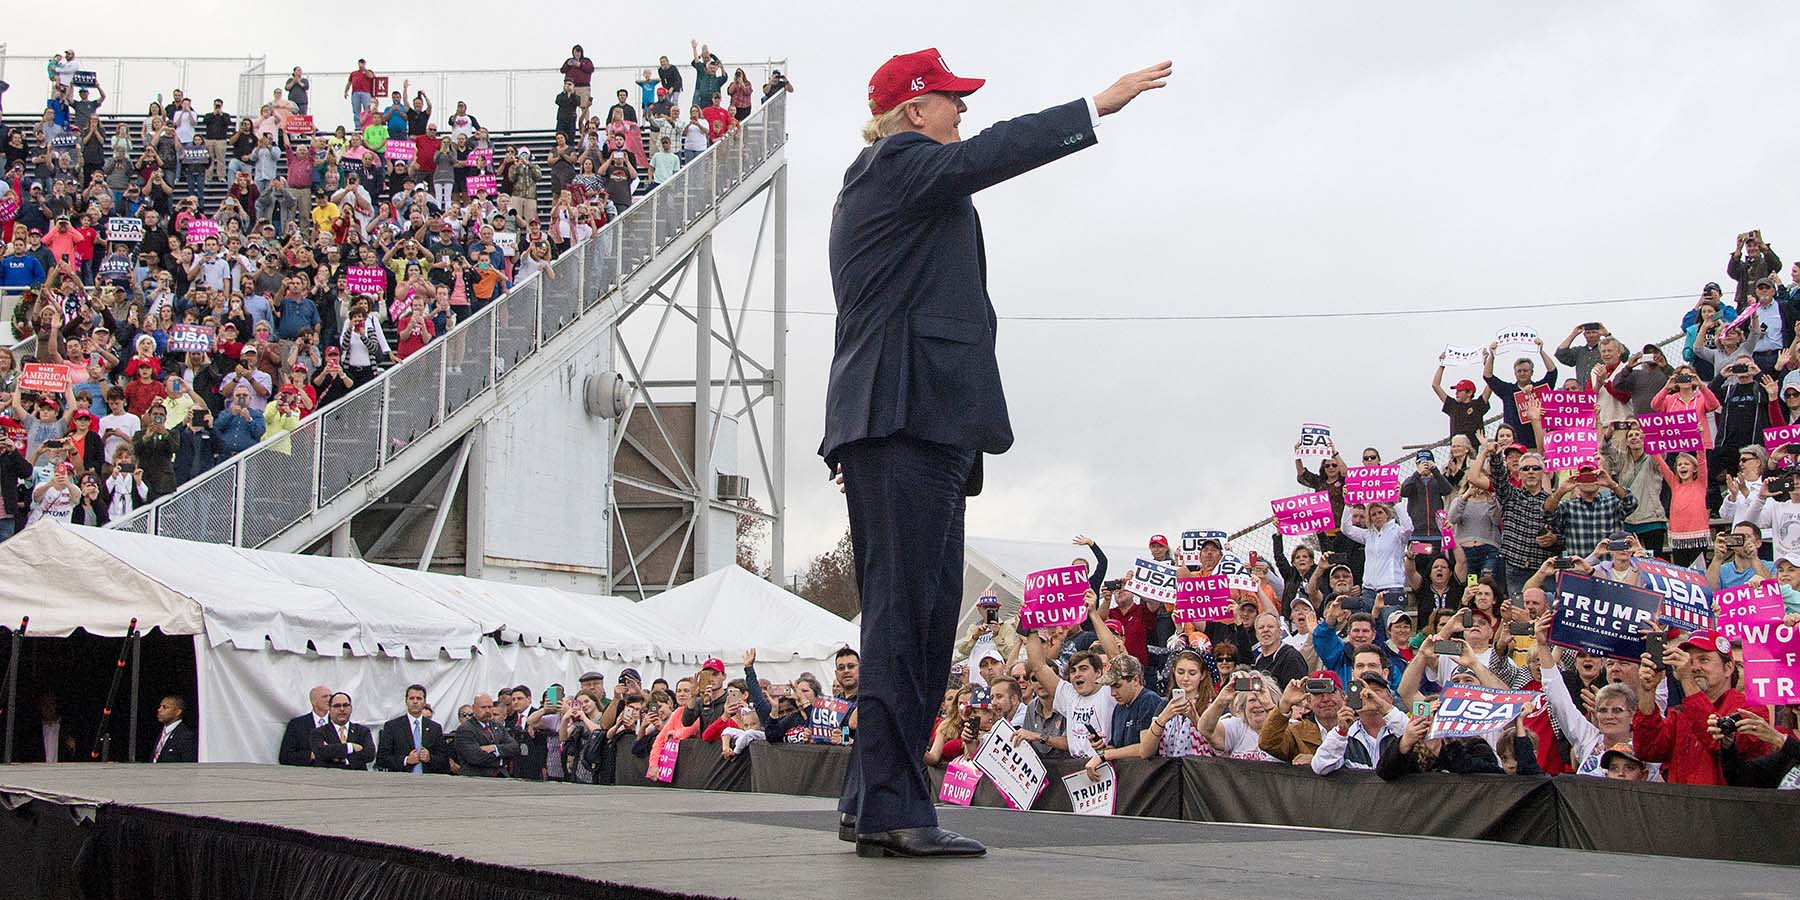 https://foreignpolicy.com/wp-content/uploads/2019/10/Fascism-Donald-Trump-rally-president-GettyImages-630158978.jpg